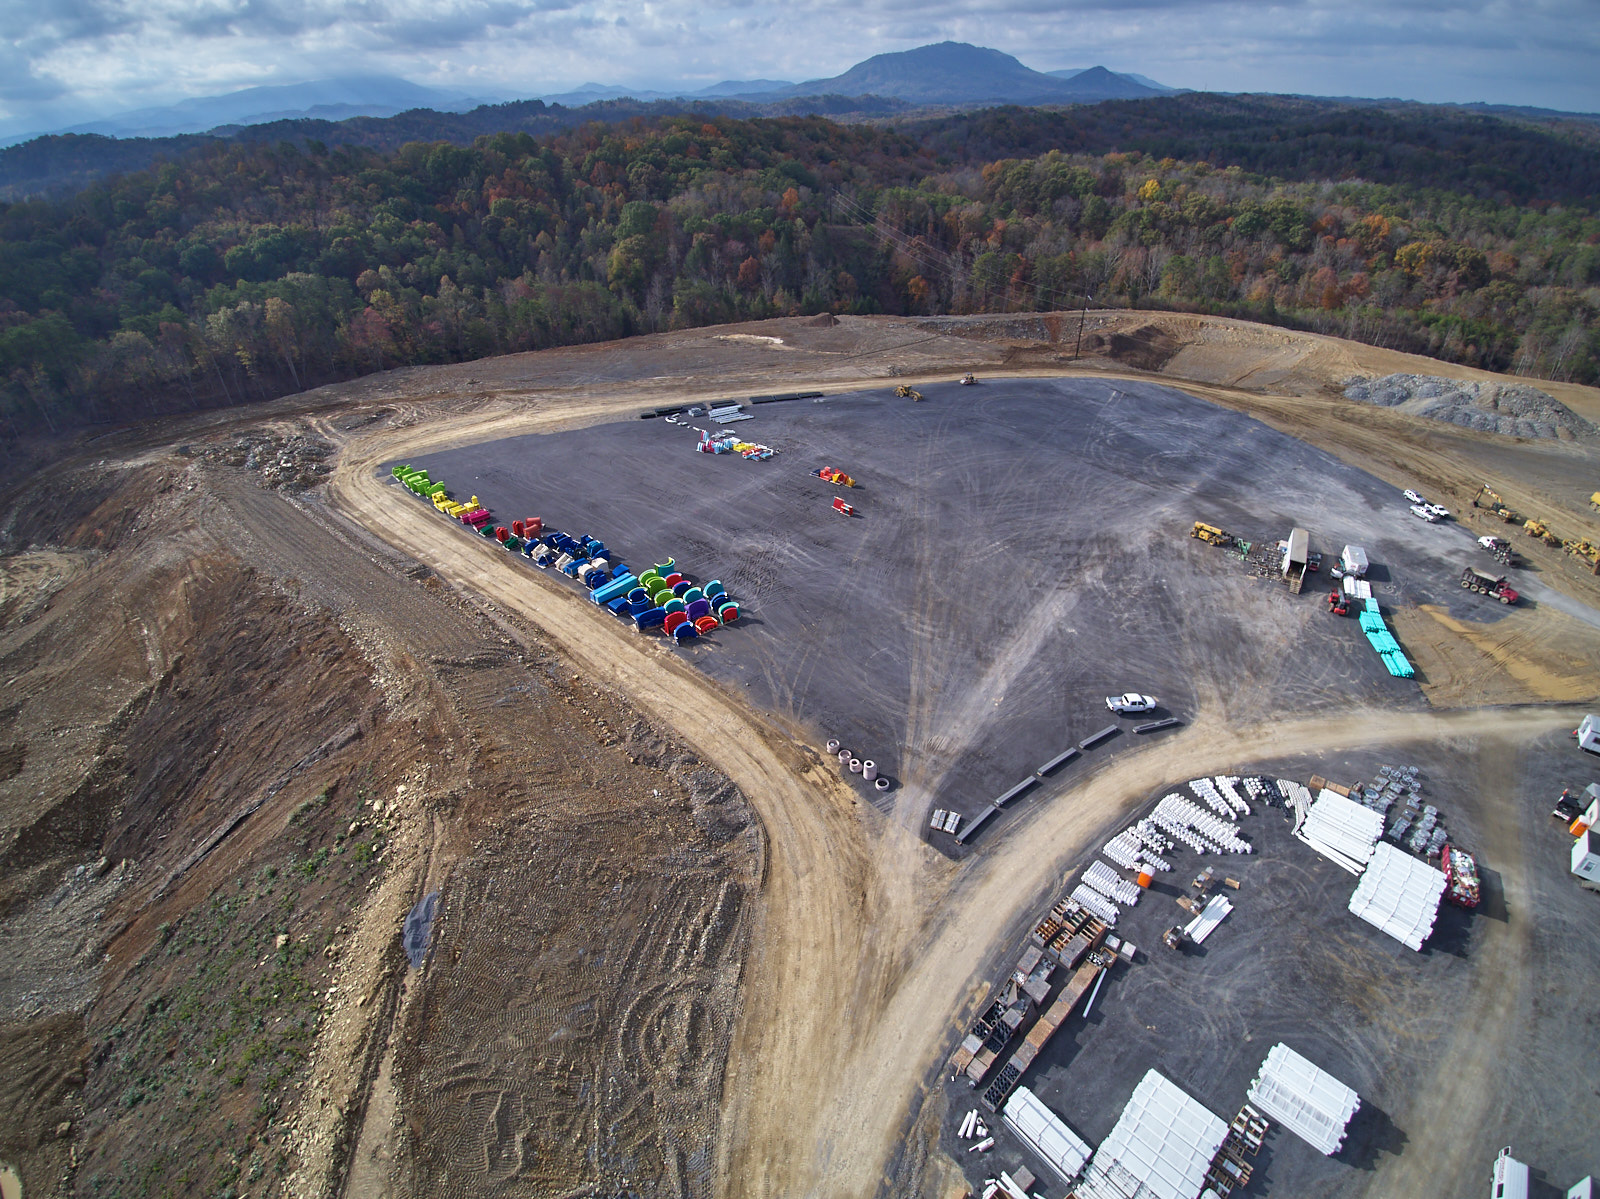 Drone Photography Sevierville, TN